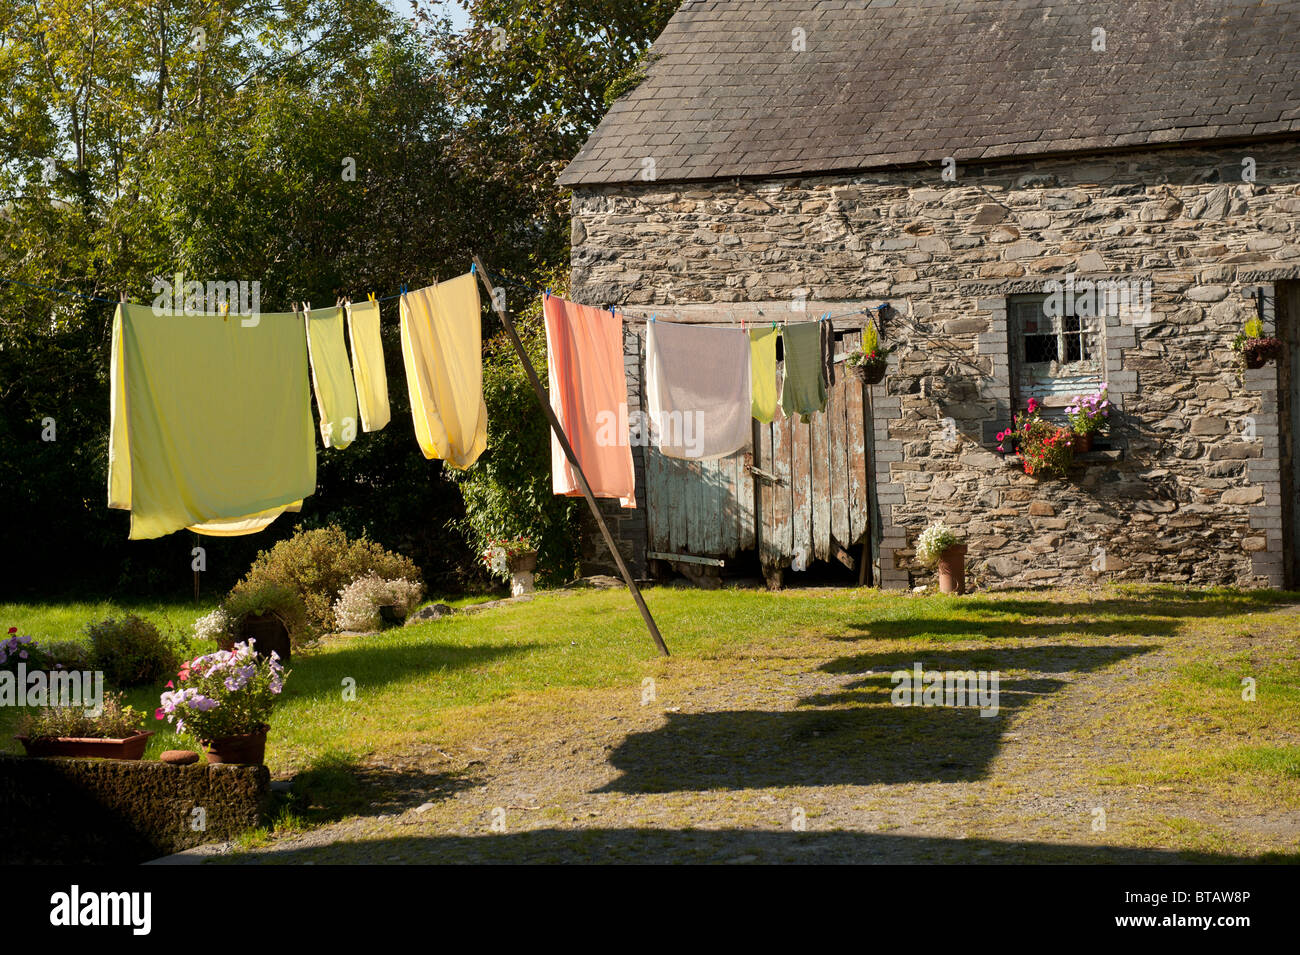 Clothes hanging out to dry on a washing line in a rural cottage garden, UK - Stock Image